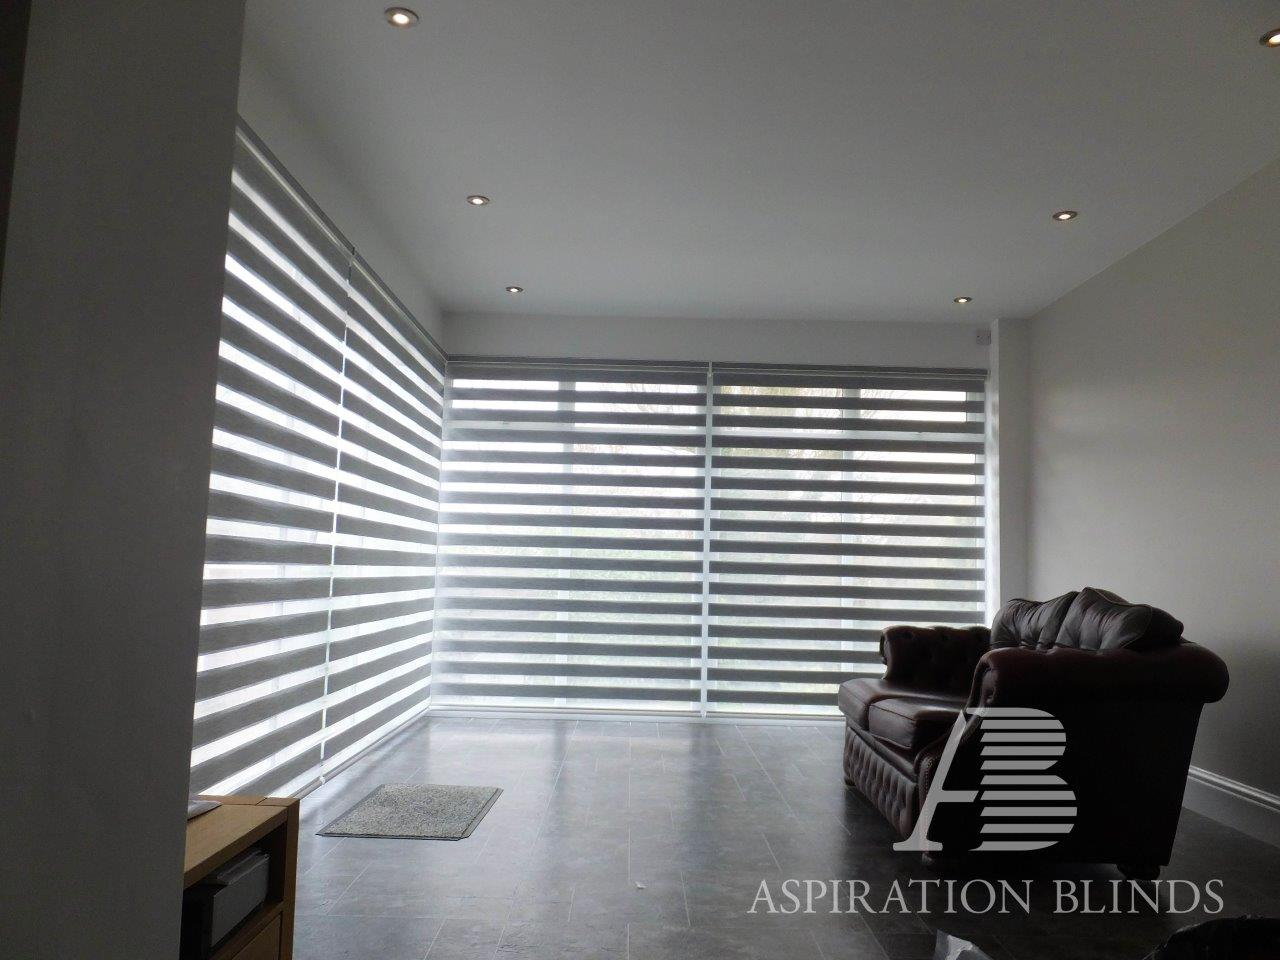 Made To Measure Vision Blinds In Bolton Aspiration Blinds